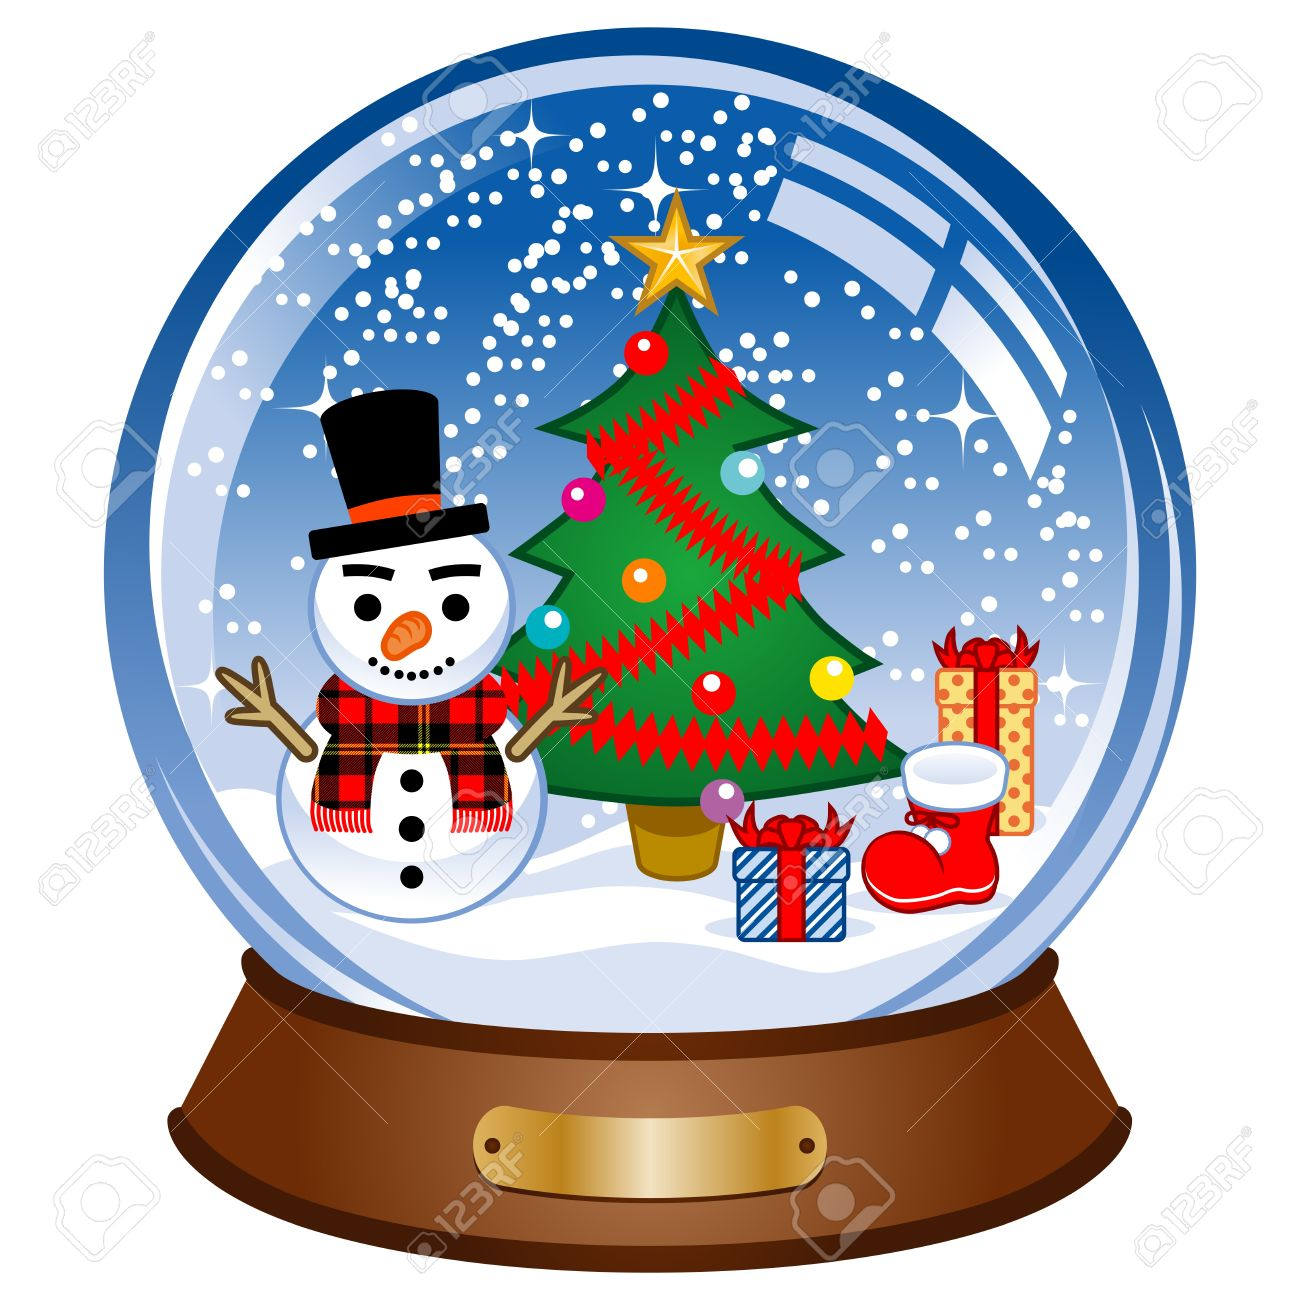 snow globe with snowman royalty free cliparts vectors and stock rh 123rf com